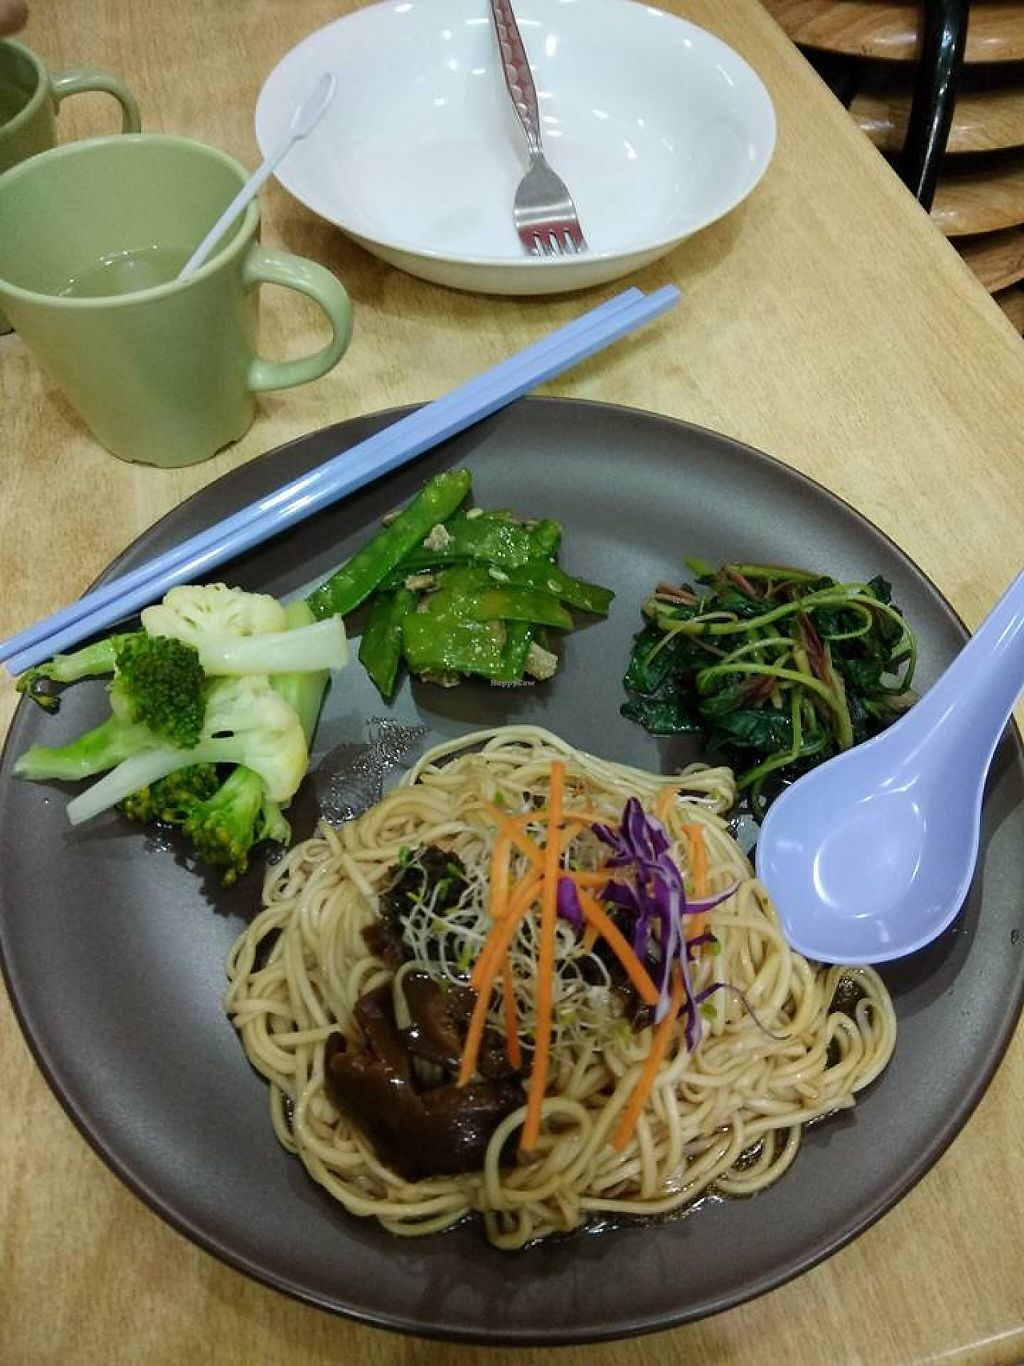 """Photo of Ananda Home - Yishun  by <a href=""""/members/profile/JimmySeah"""">JimmySeah</a> <br/>noodles with organic vegetables  <br/> May 18, 2017  - <a href='/contact/abuse/image/92289/259673'>Report</a>"""